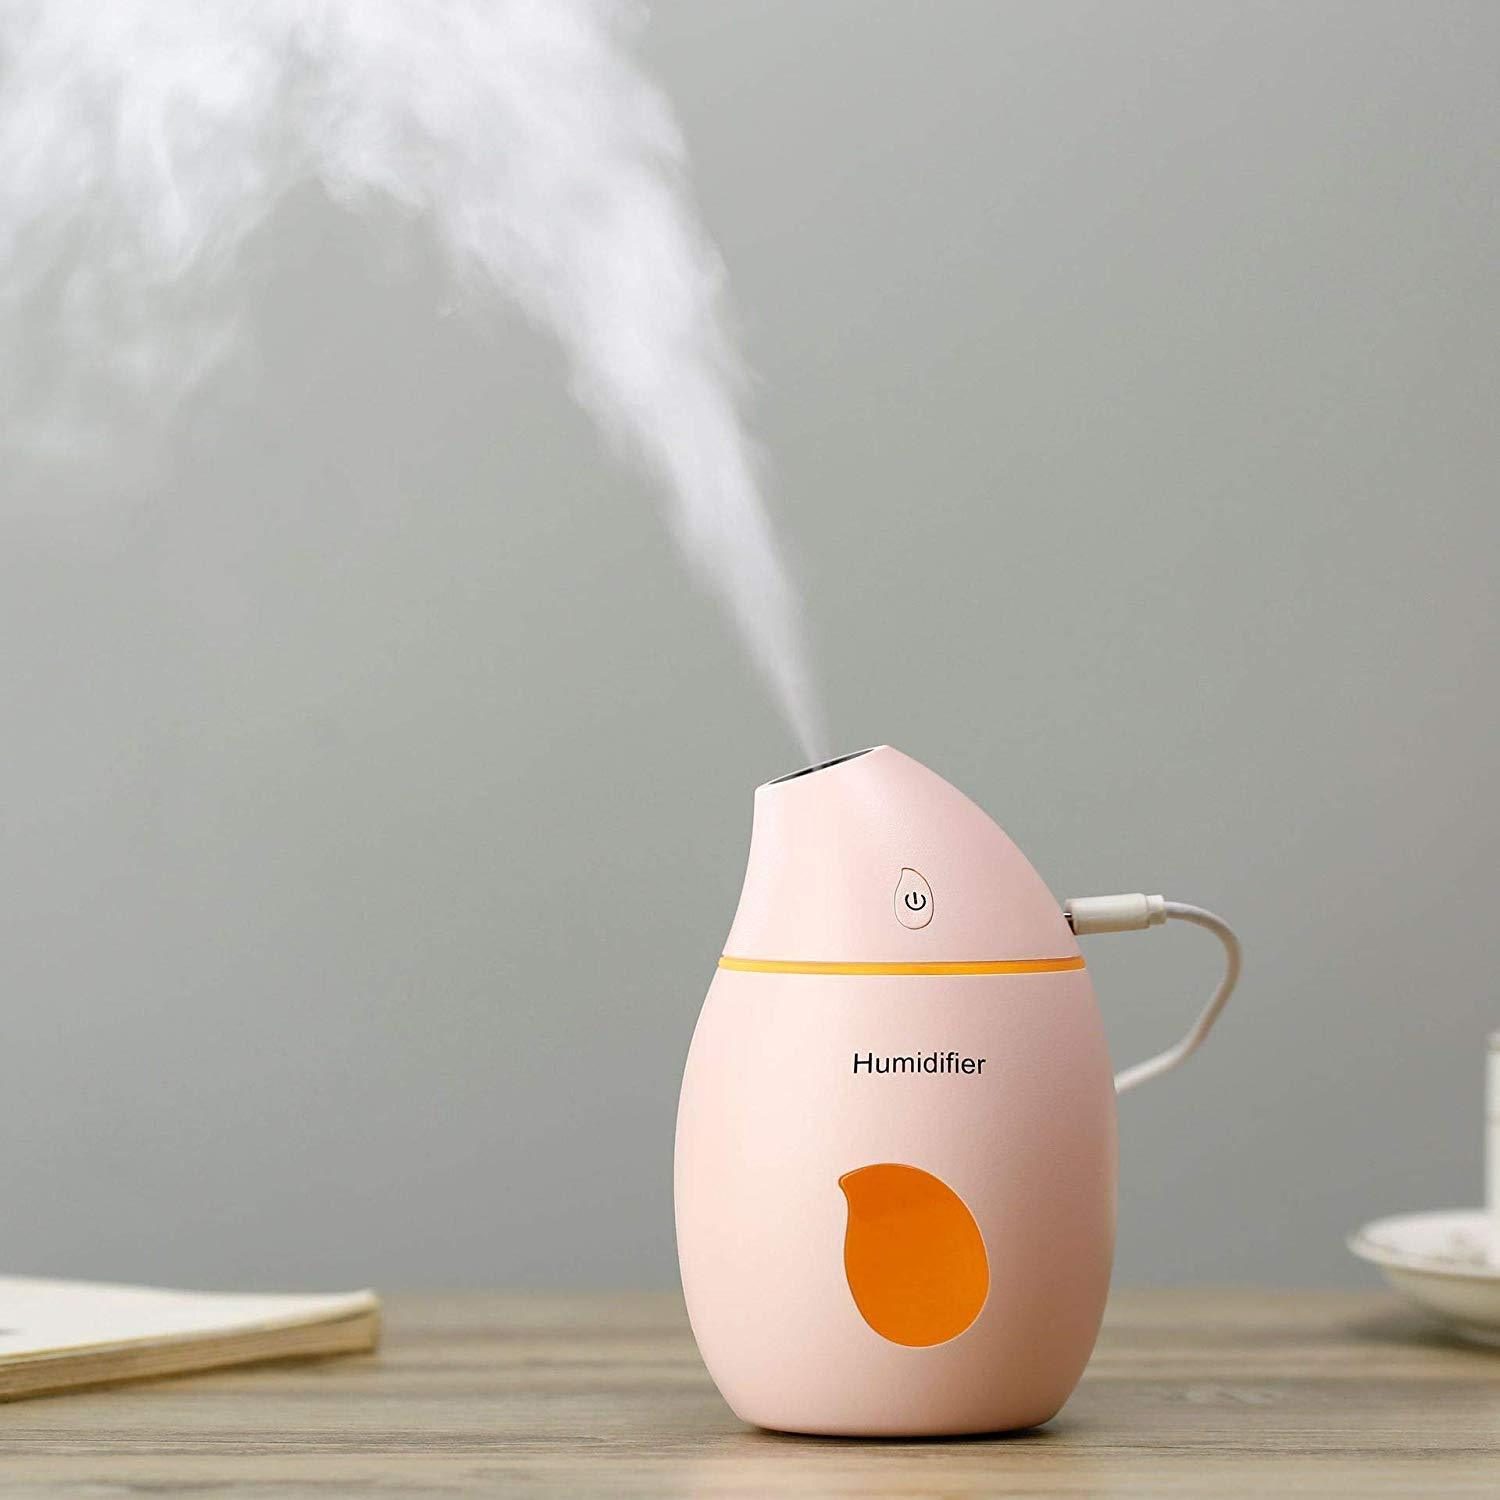 Aroma Essential Oil Diffuser Ultrasonic Mango Humidifier Air Purifier  USB Car air freshener for Office Home